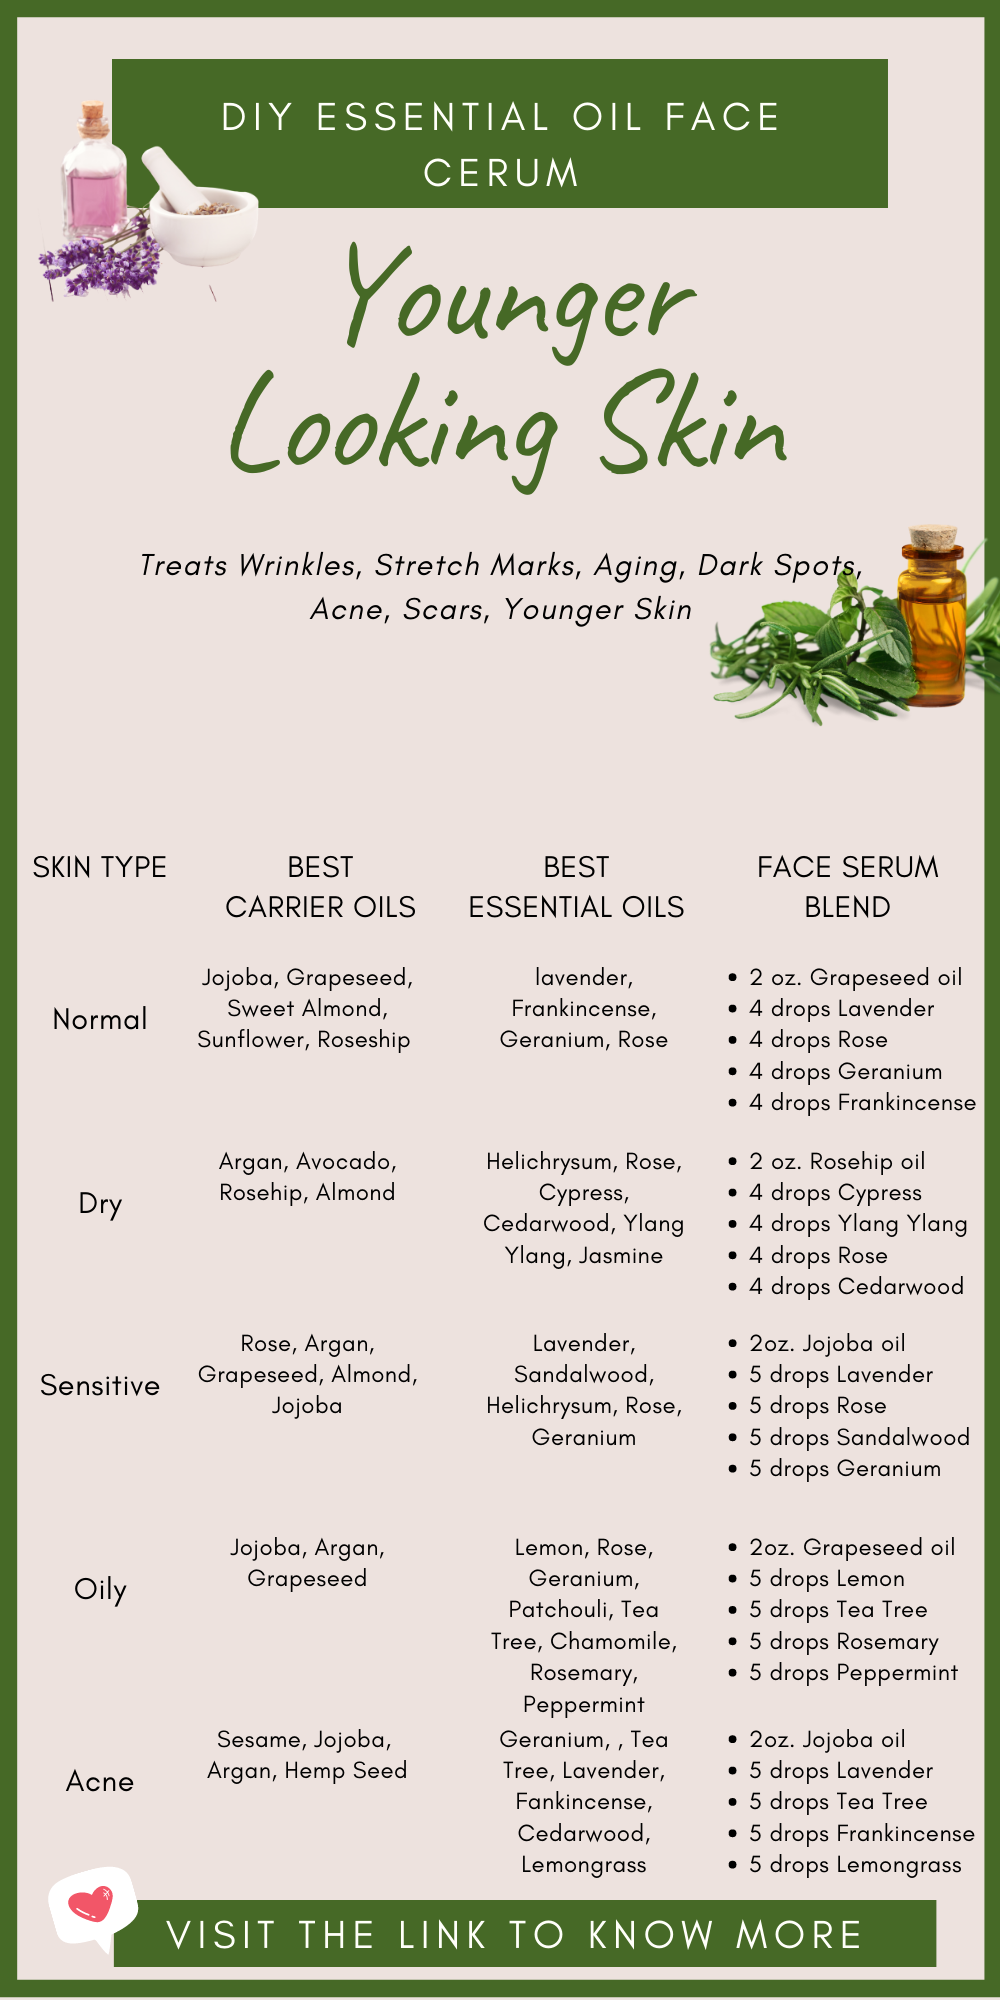 Best Essential Oils For Skin Care: Wrinkles, Stretch Marks, Dark Circles, Acne, Aging, Scars